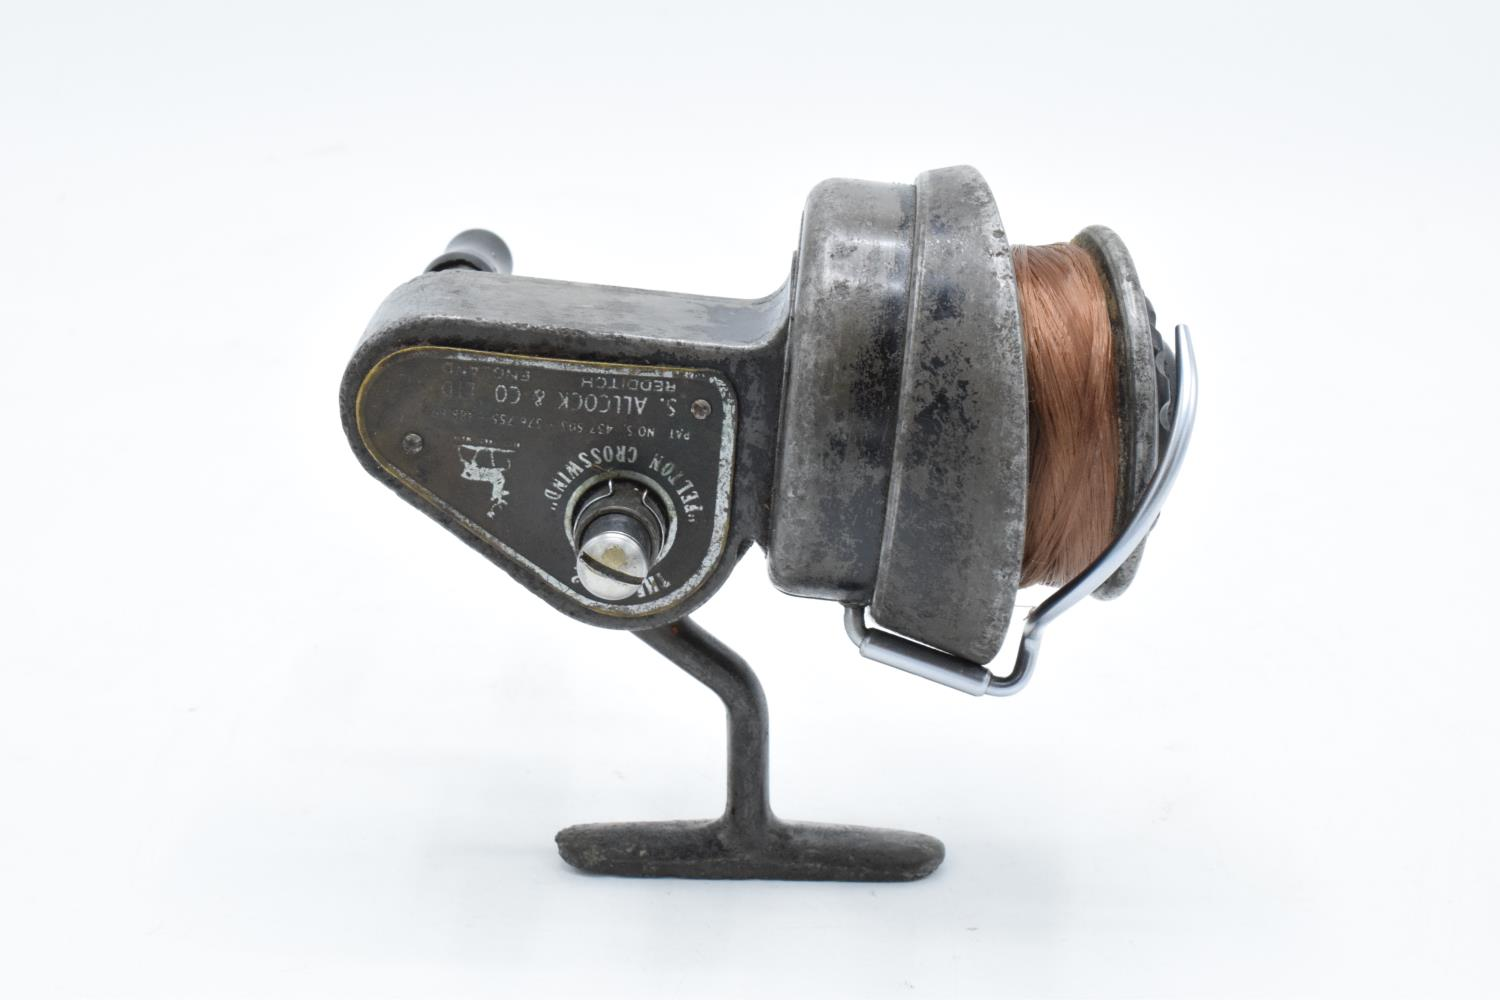 The No. 2 Felton Crosswind fishing reel by S. Allcock and Co Ltd of Redditch. Untested. - Image 2 of 6